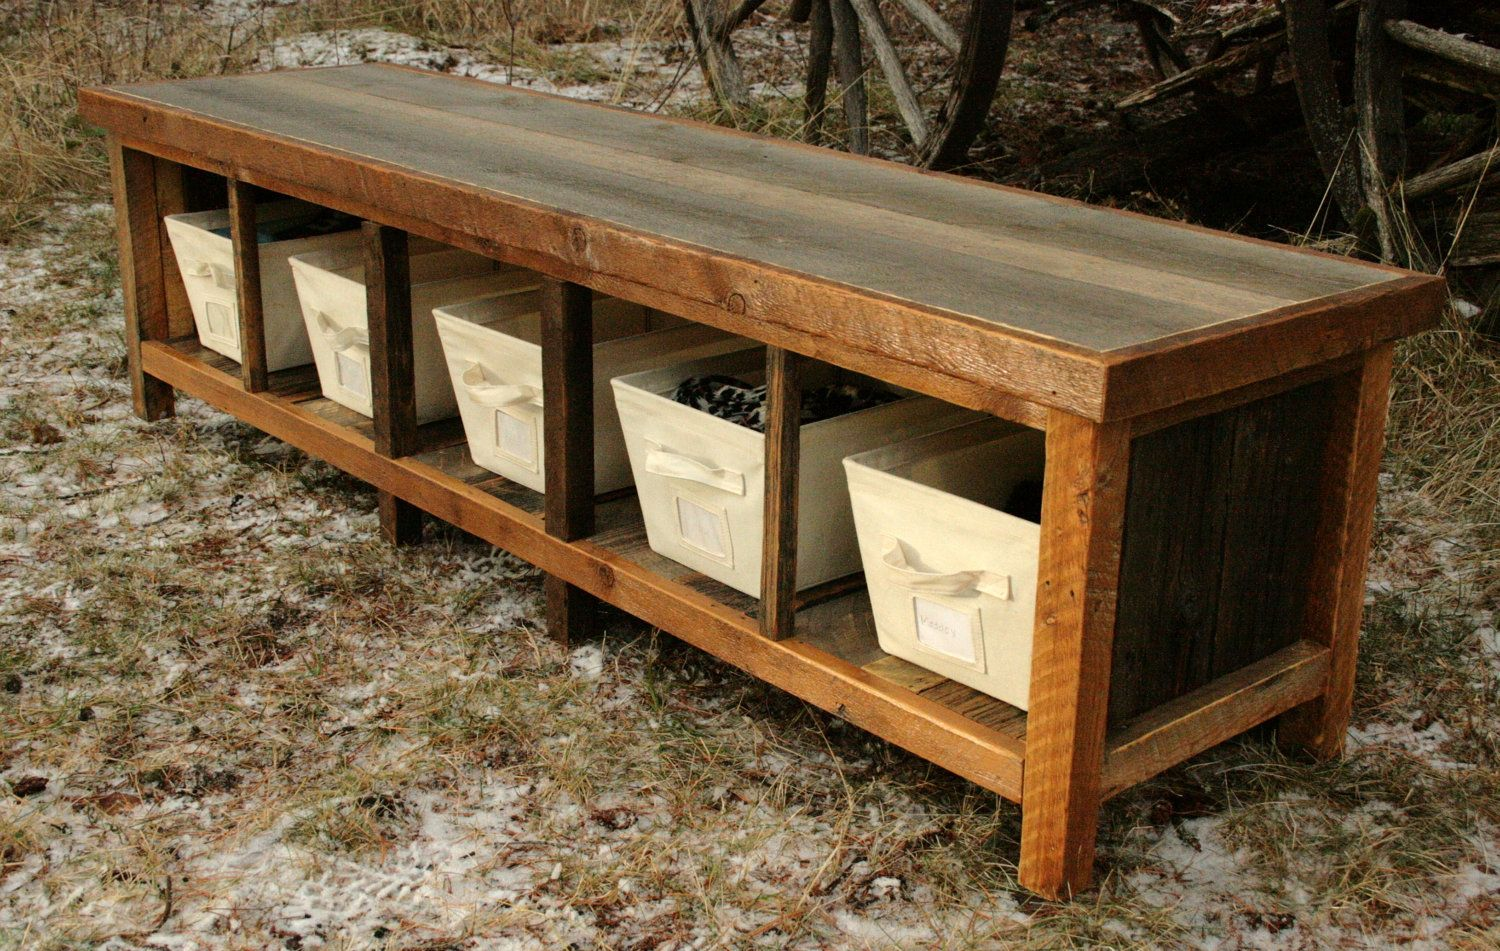 I Can Dream Of Making This Out Of Our Old Rimu Studs But I M Sure It Wouldn T Look The Same Rustic Storage Bench Rustic Storage Rustic Entryway Bench